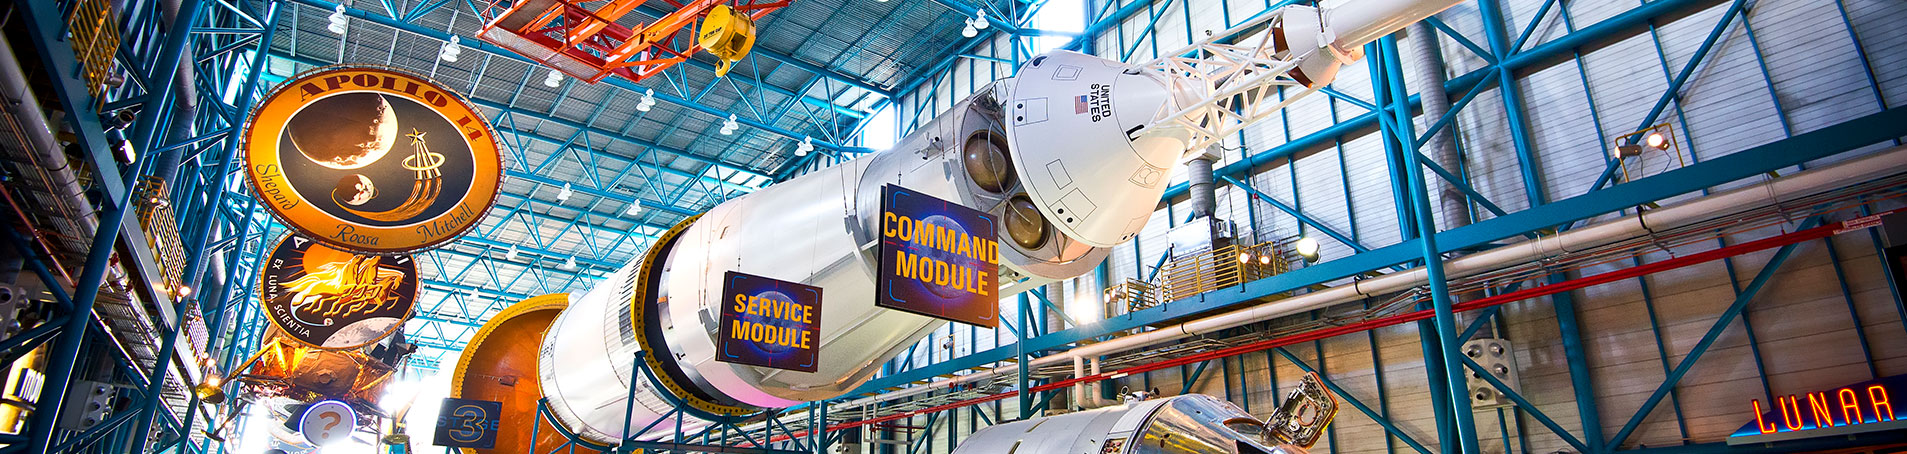 Host a unique private event at the Apollo / Saturn V Center, including dinner beneath a real moon rocket.